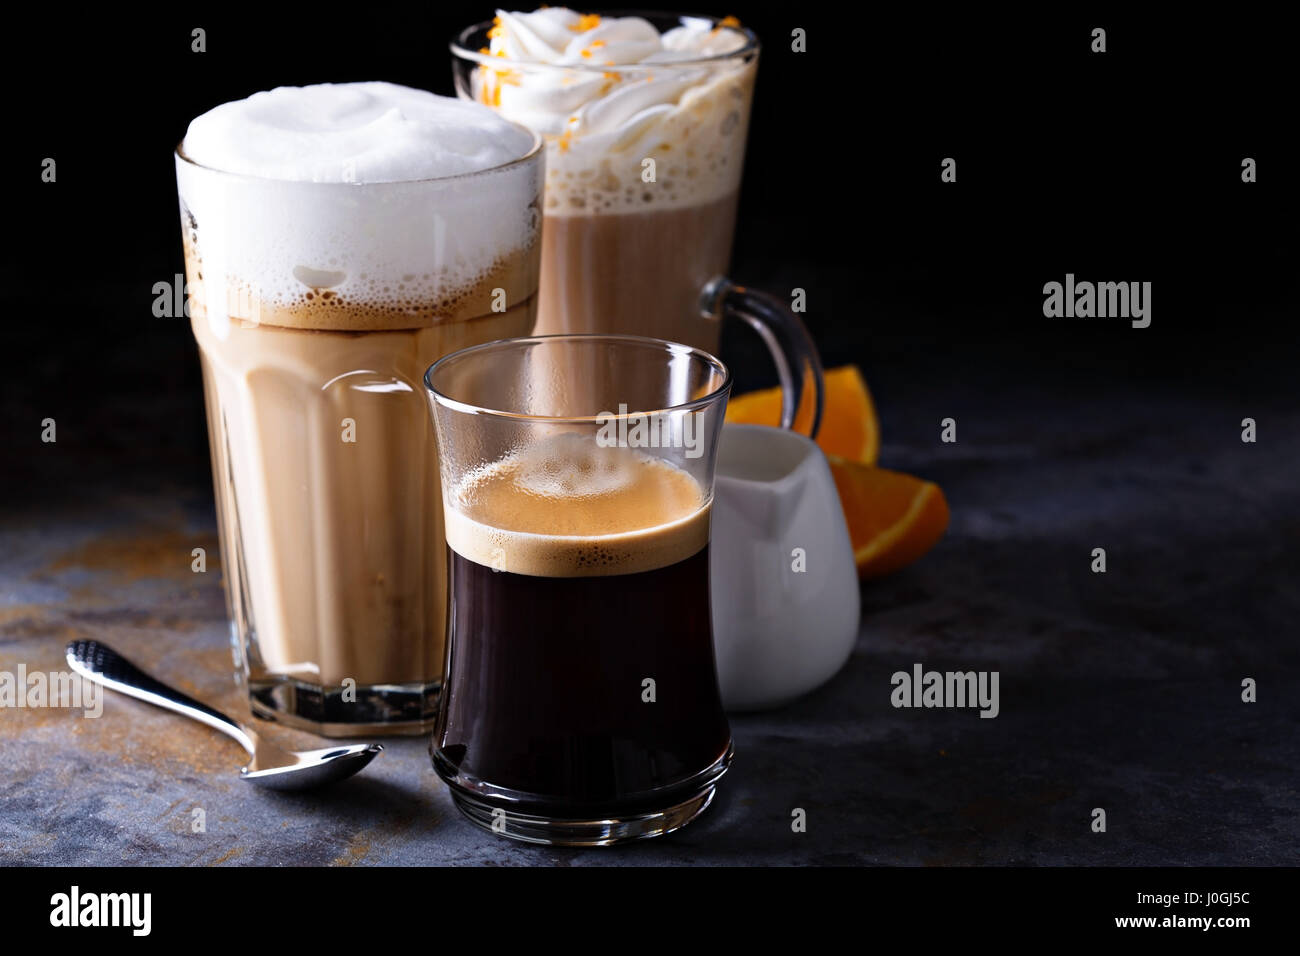 Coffee latte, black espresso and viennese coffee - Stock Image